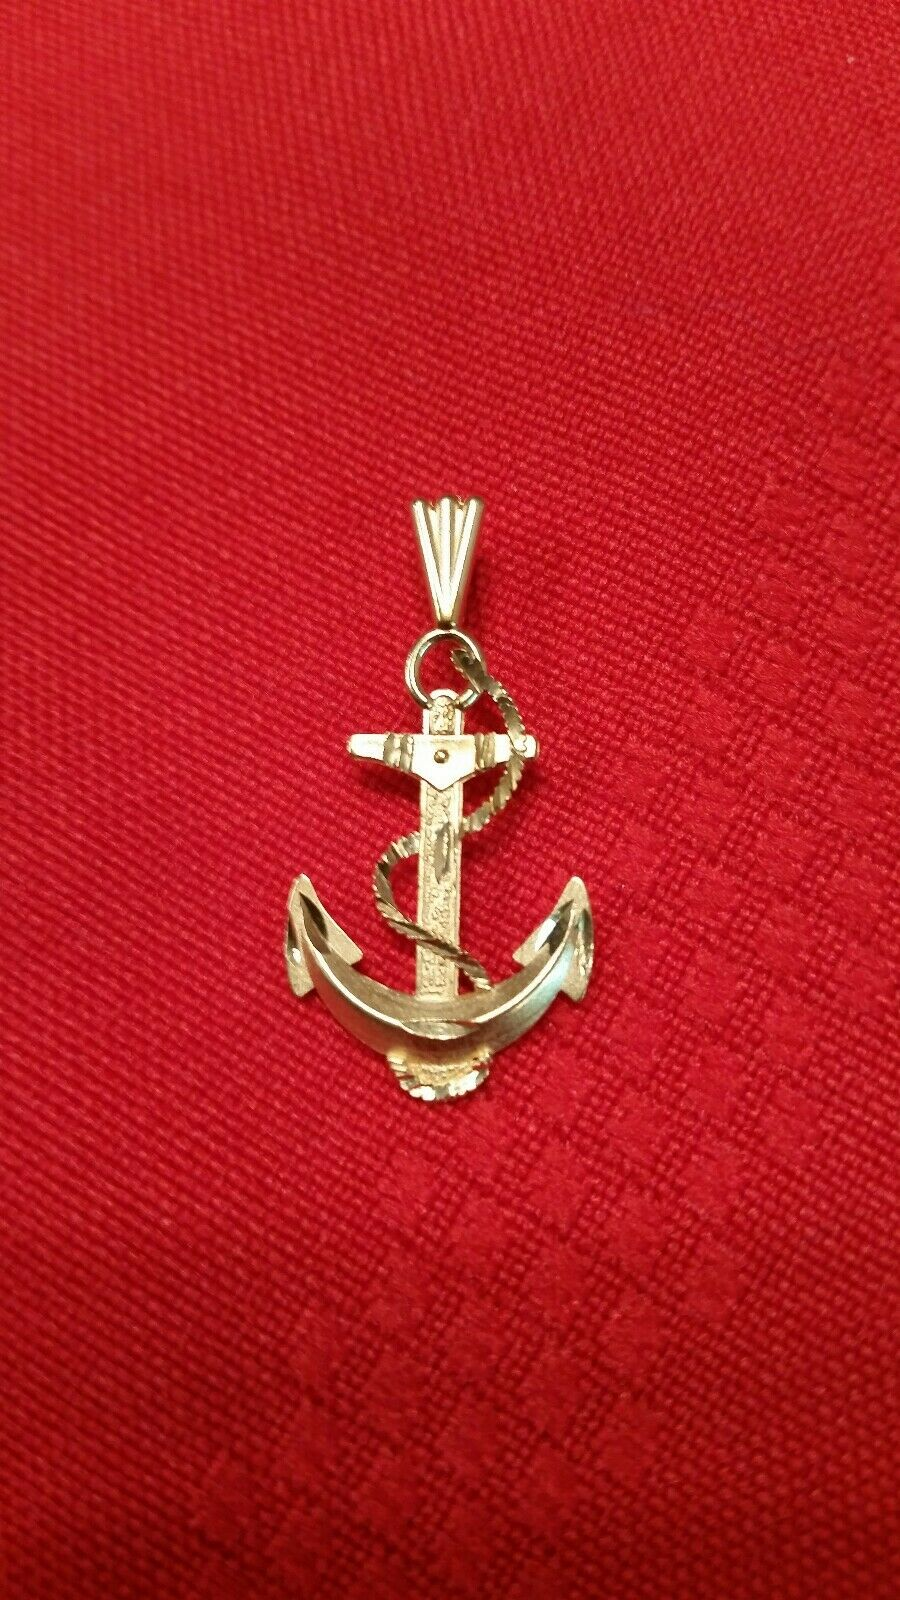 14K solid yellow gold anchor pendant 11 4  tall × 5 8 w, 1 4  bale, 1.5 g